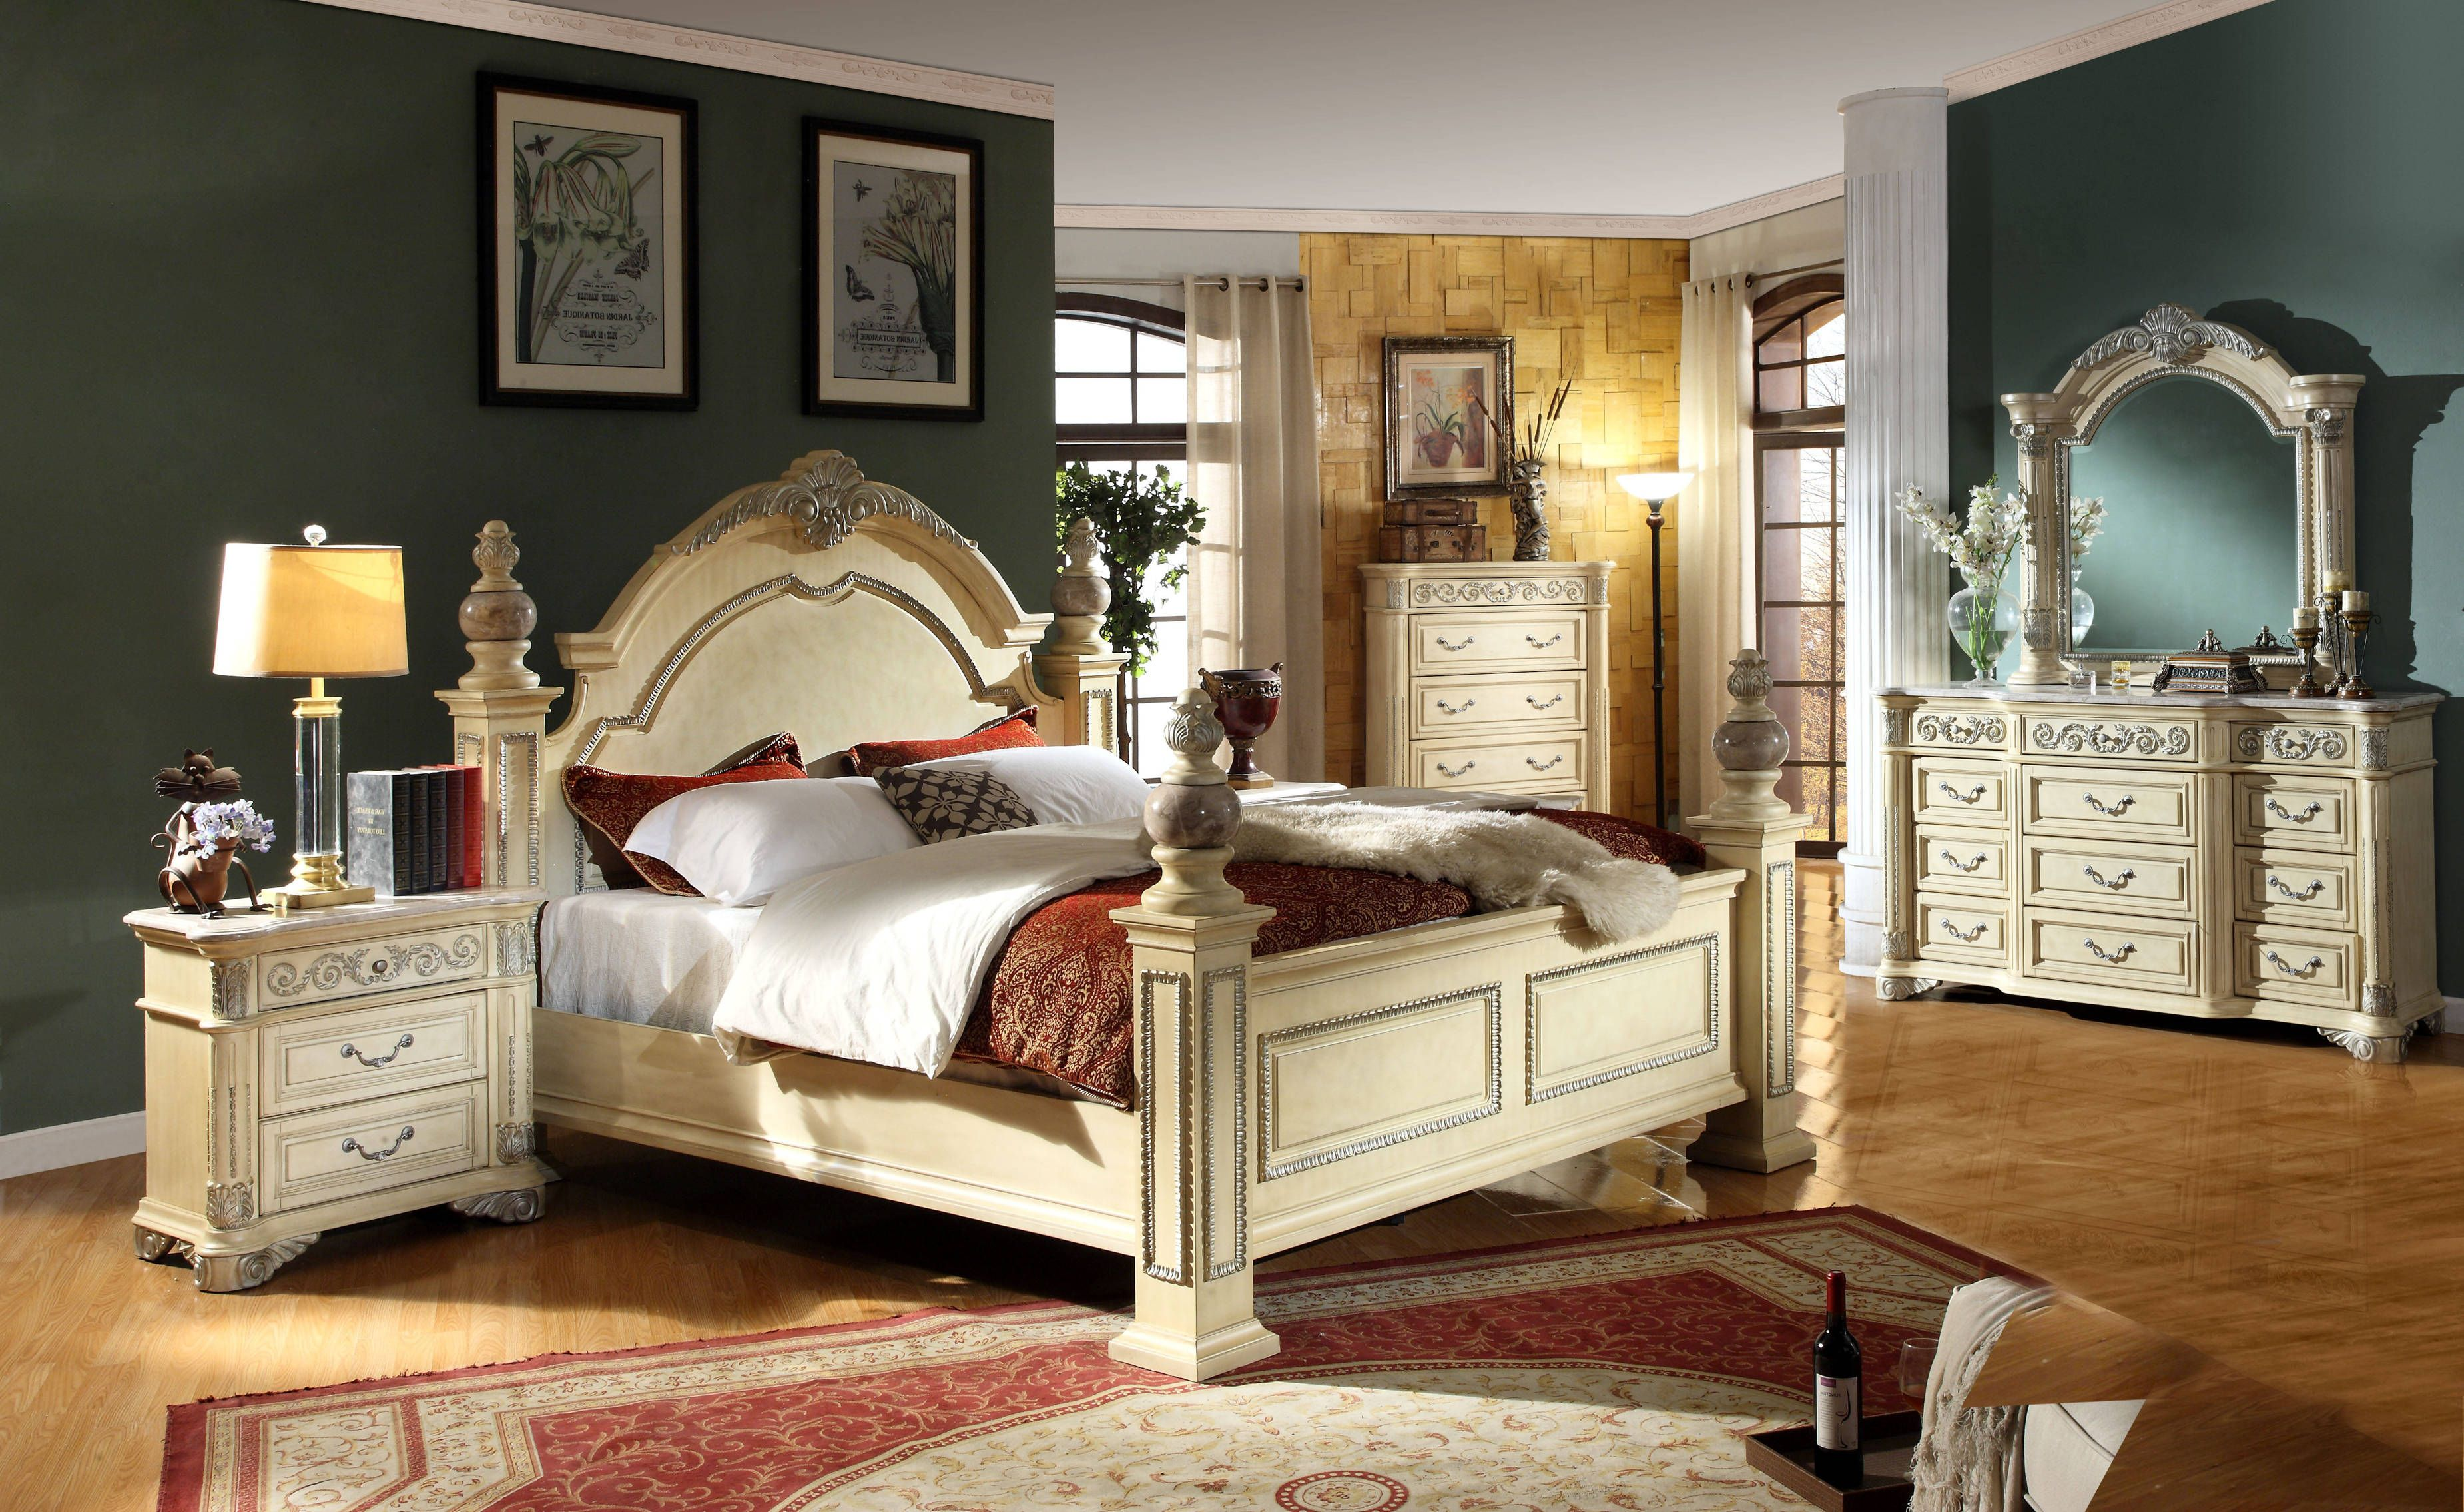 Sienna Antique White Solid Wood Master Bedroom Set Master Bedroom Set King Bedroom Sets Bedroom Panel